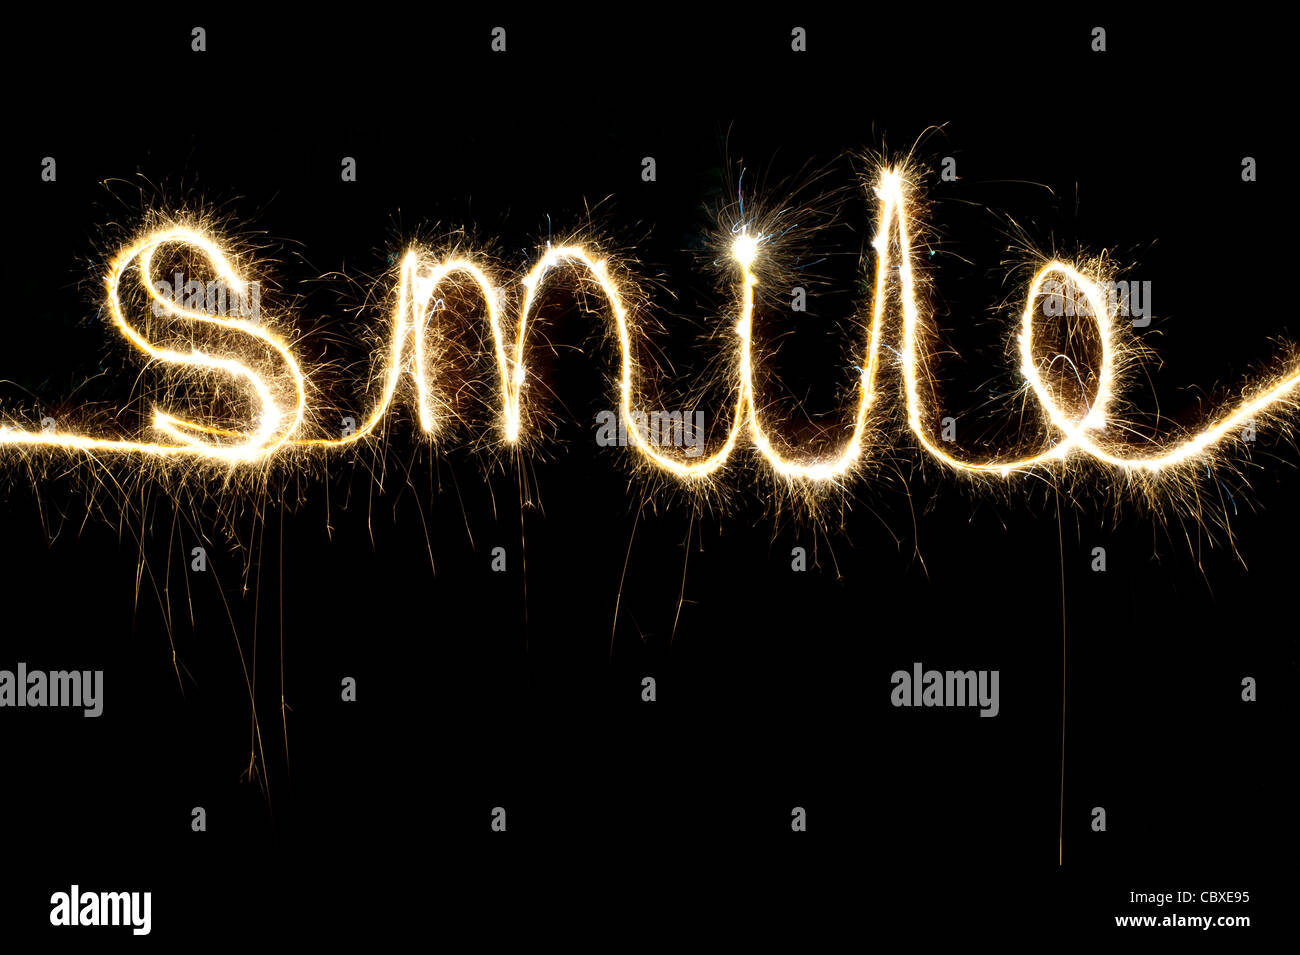 SMILE  written with a sparkler at night - Stock Image